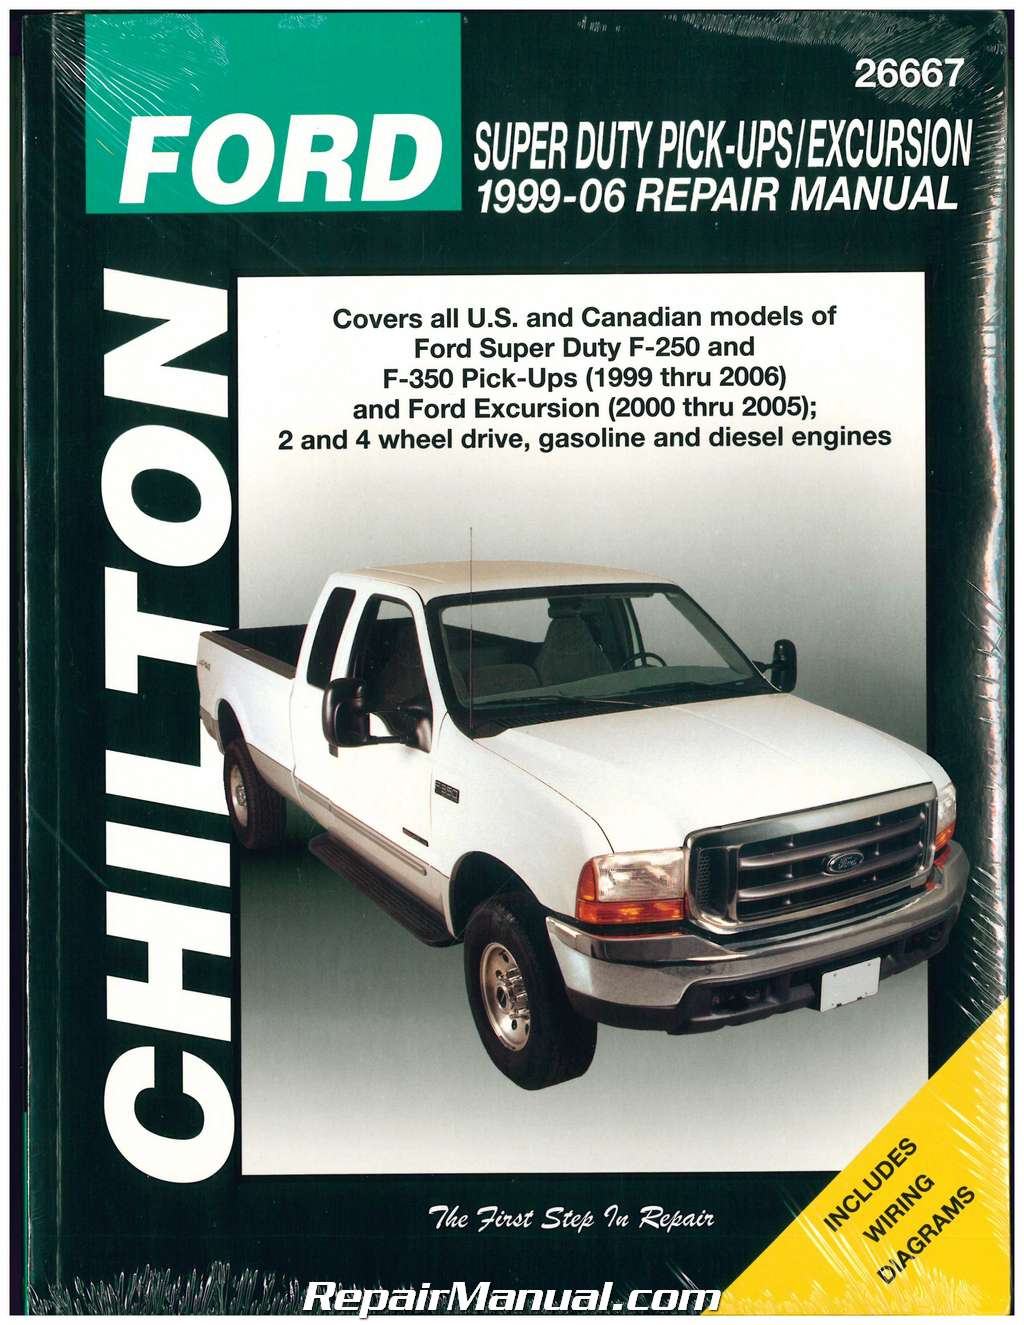 Chilton Ford Super Duty F-250 F-350 1999-2006 Ford Excursion 2000-2005 Repair  Manual